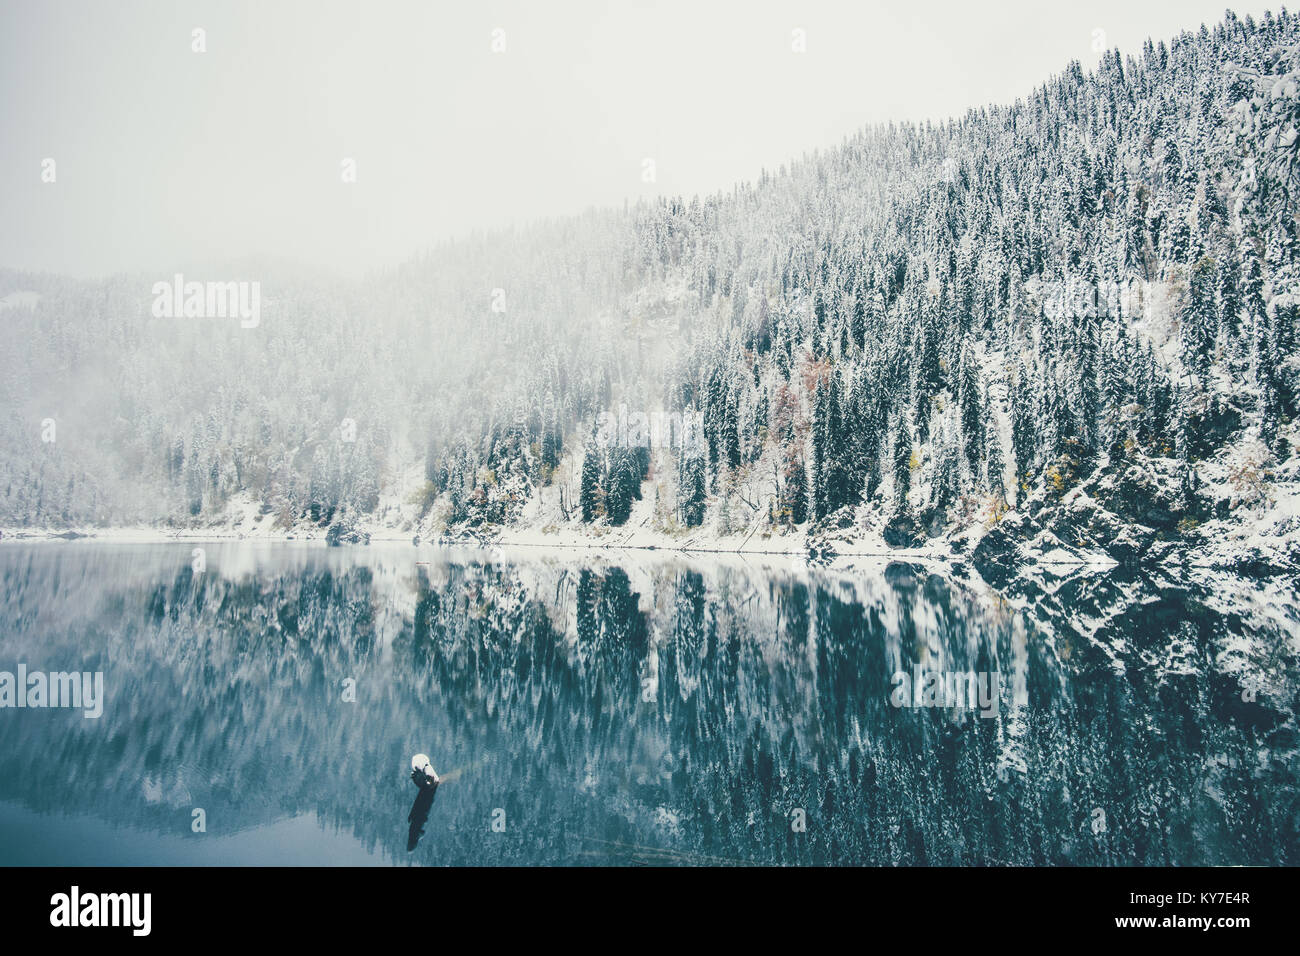 Winter Lake and snowy coniferous Forest Landscape Travel foggy serene scenic view - Stock Image